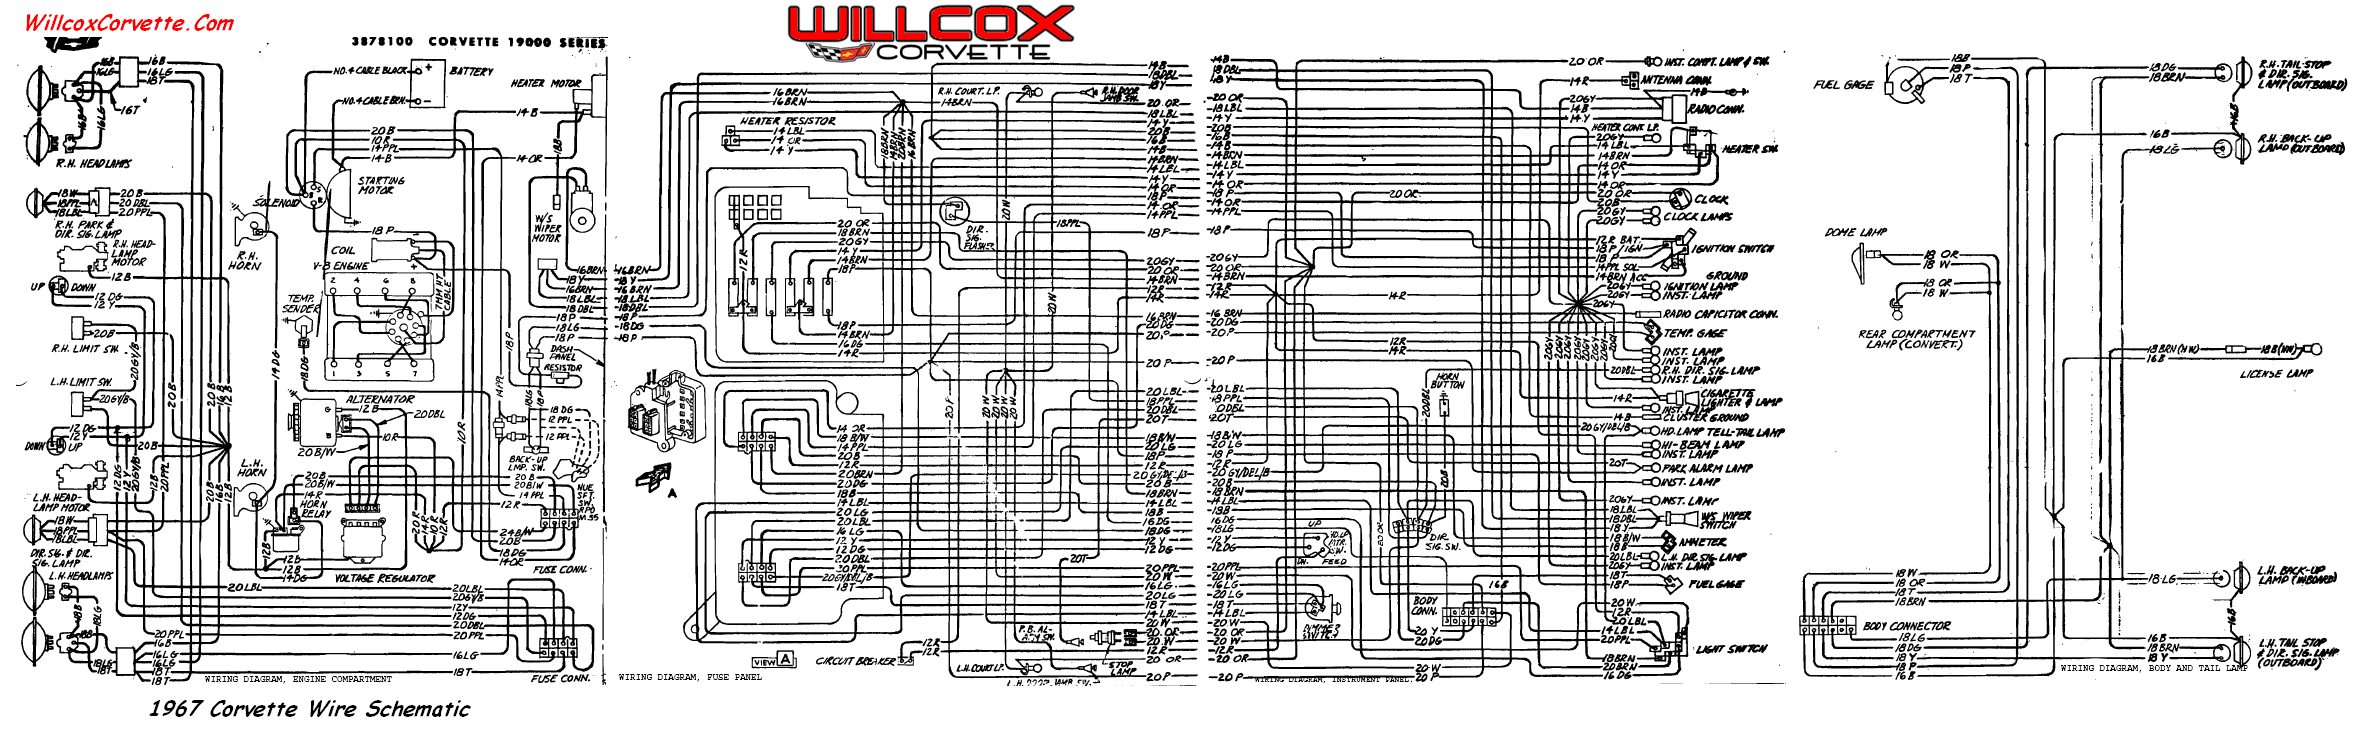 67 wire schematic for tracing wires 1978 corvette wiring diagram pdf 1980 el camino wiring diagram corvette c1 wiring diagram at gsmx.co